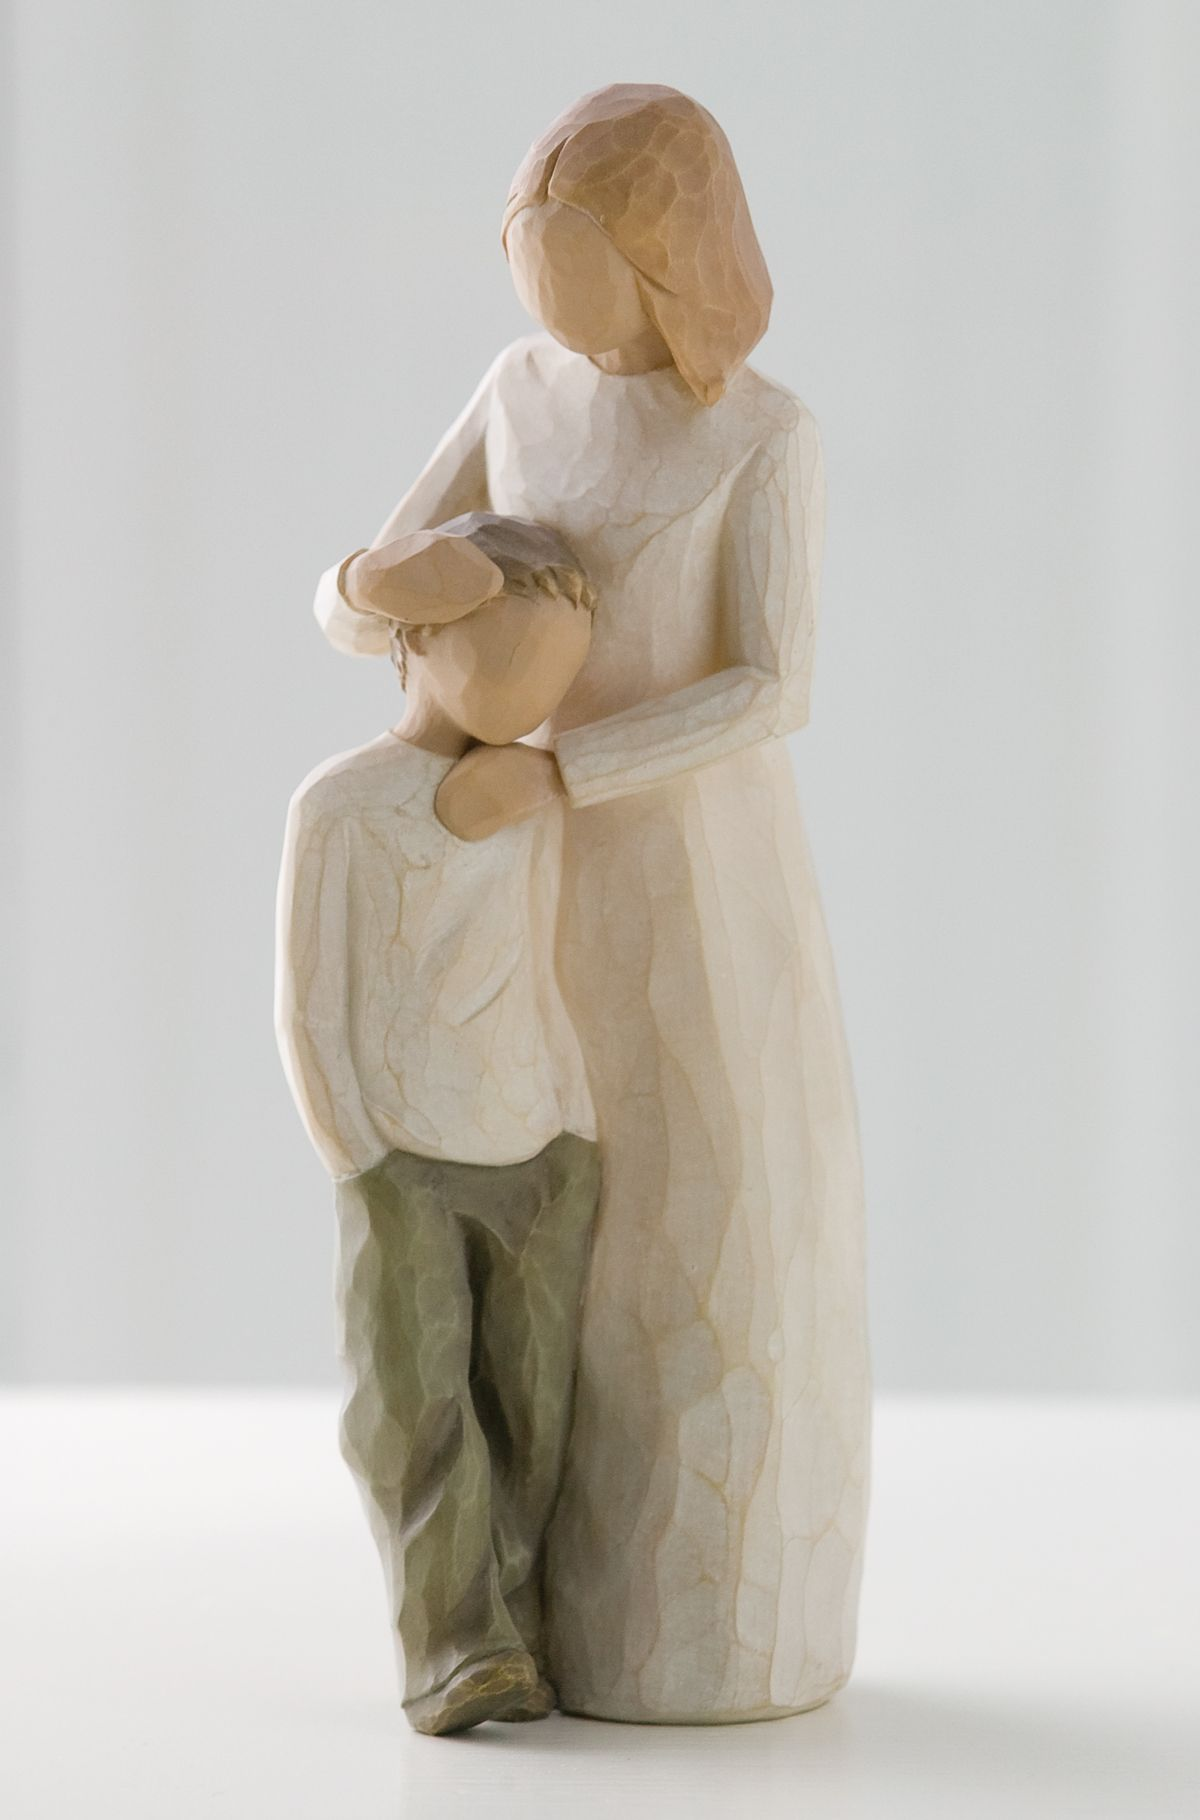 Mother and Son - Celebrating the bond of love between mothers and sons